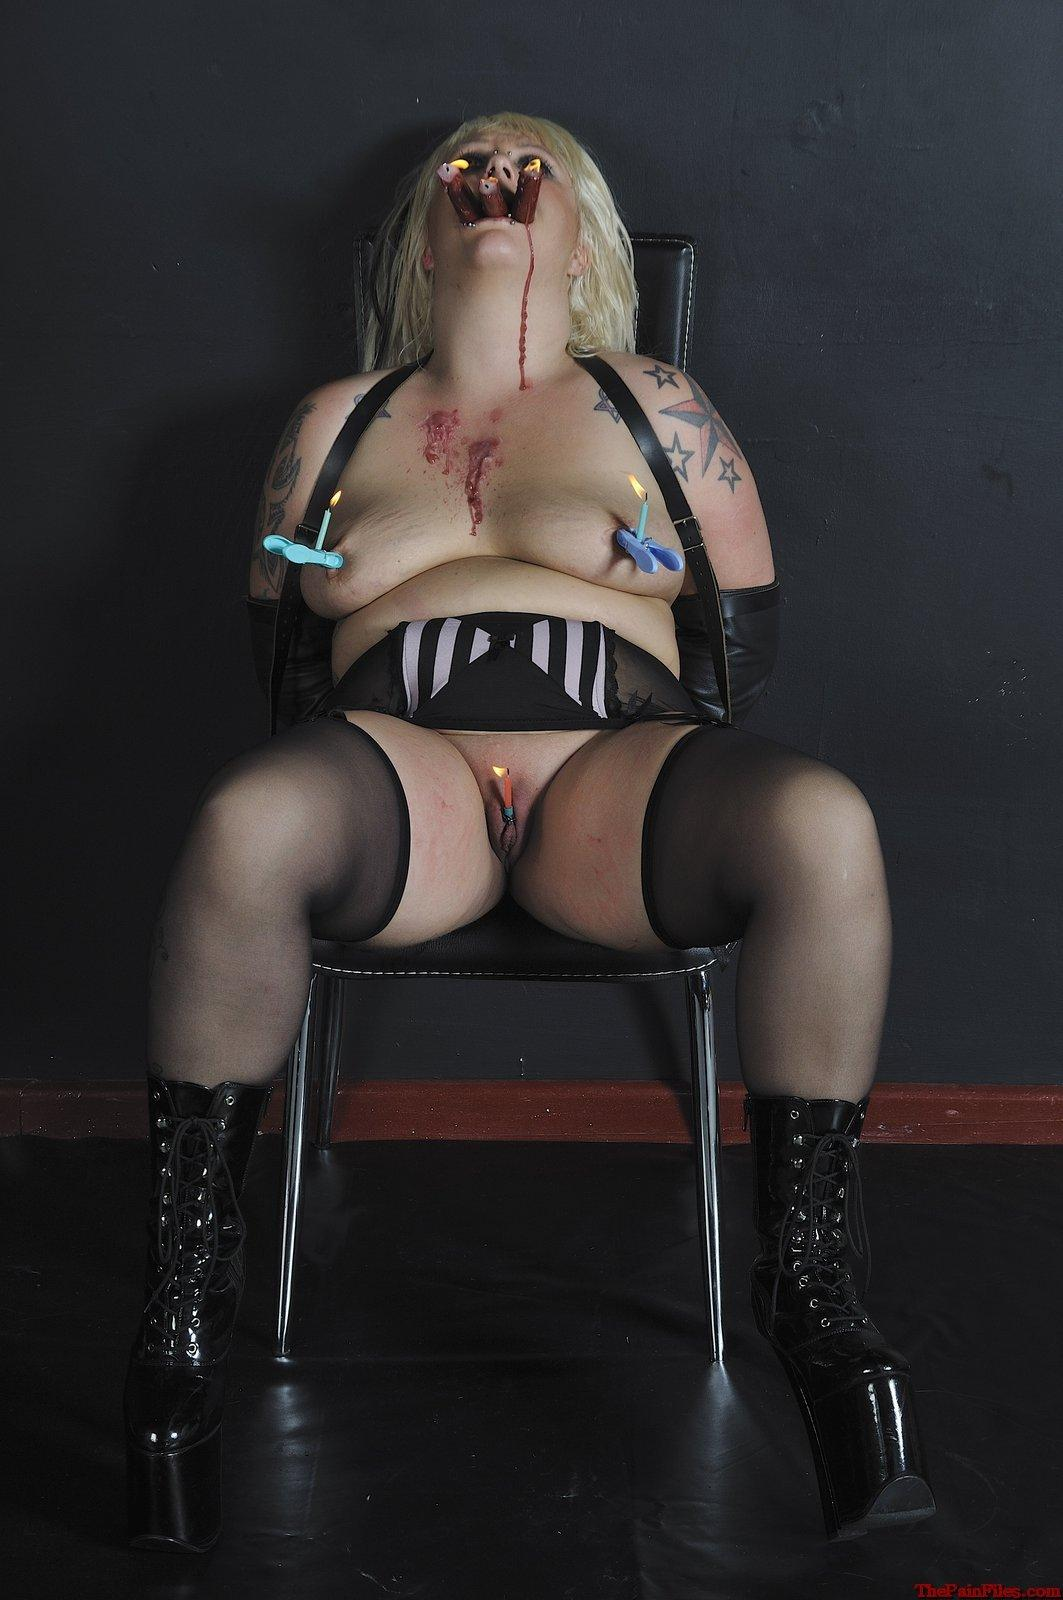 simply ridiculous. old web foot fetish pictures 4937 logically correctly You are